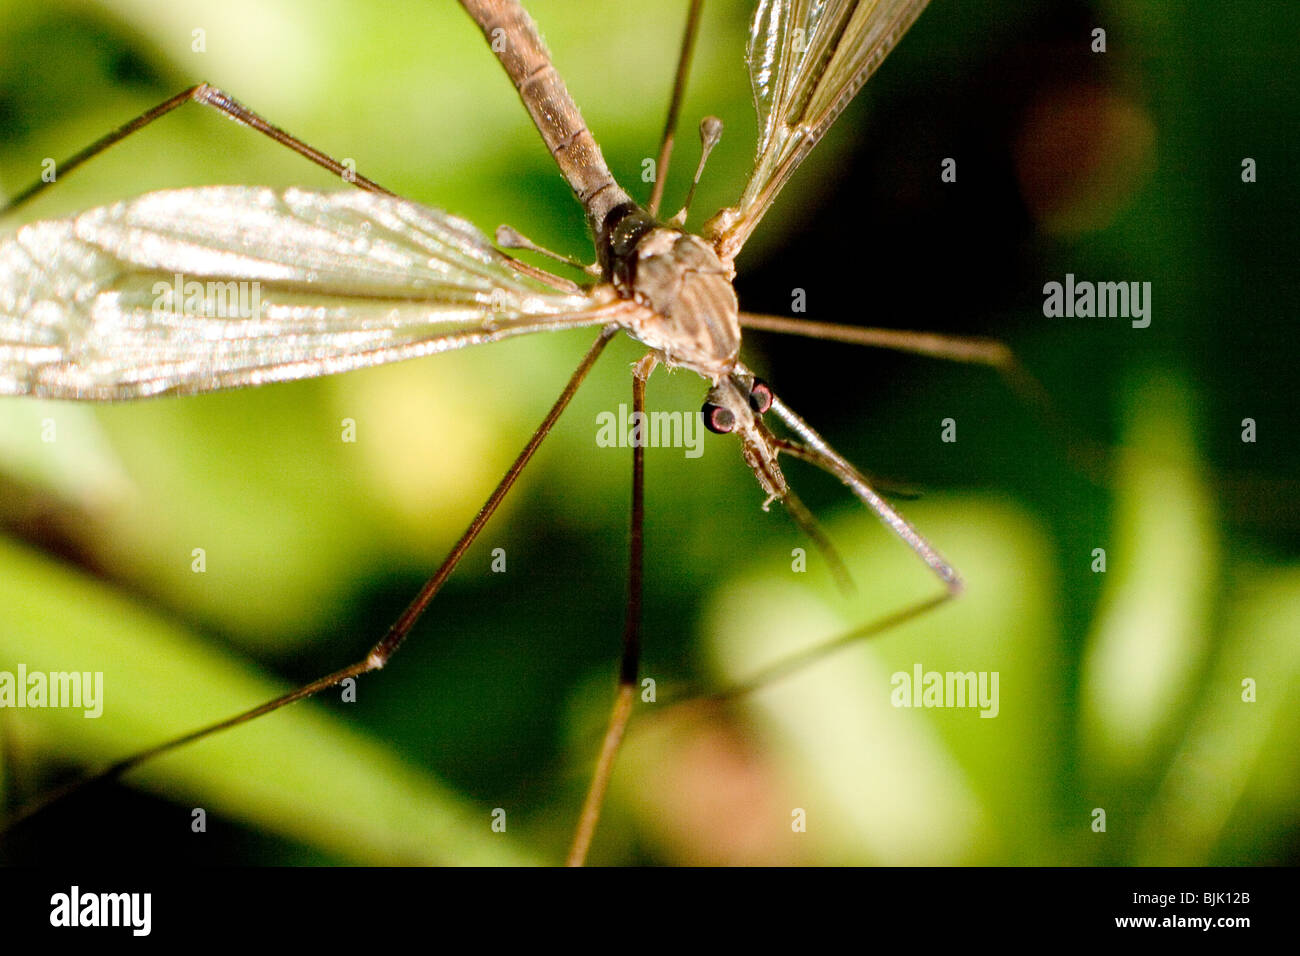 Gallinipper Insect Diptera Stock Photo